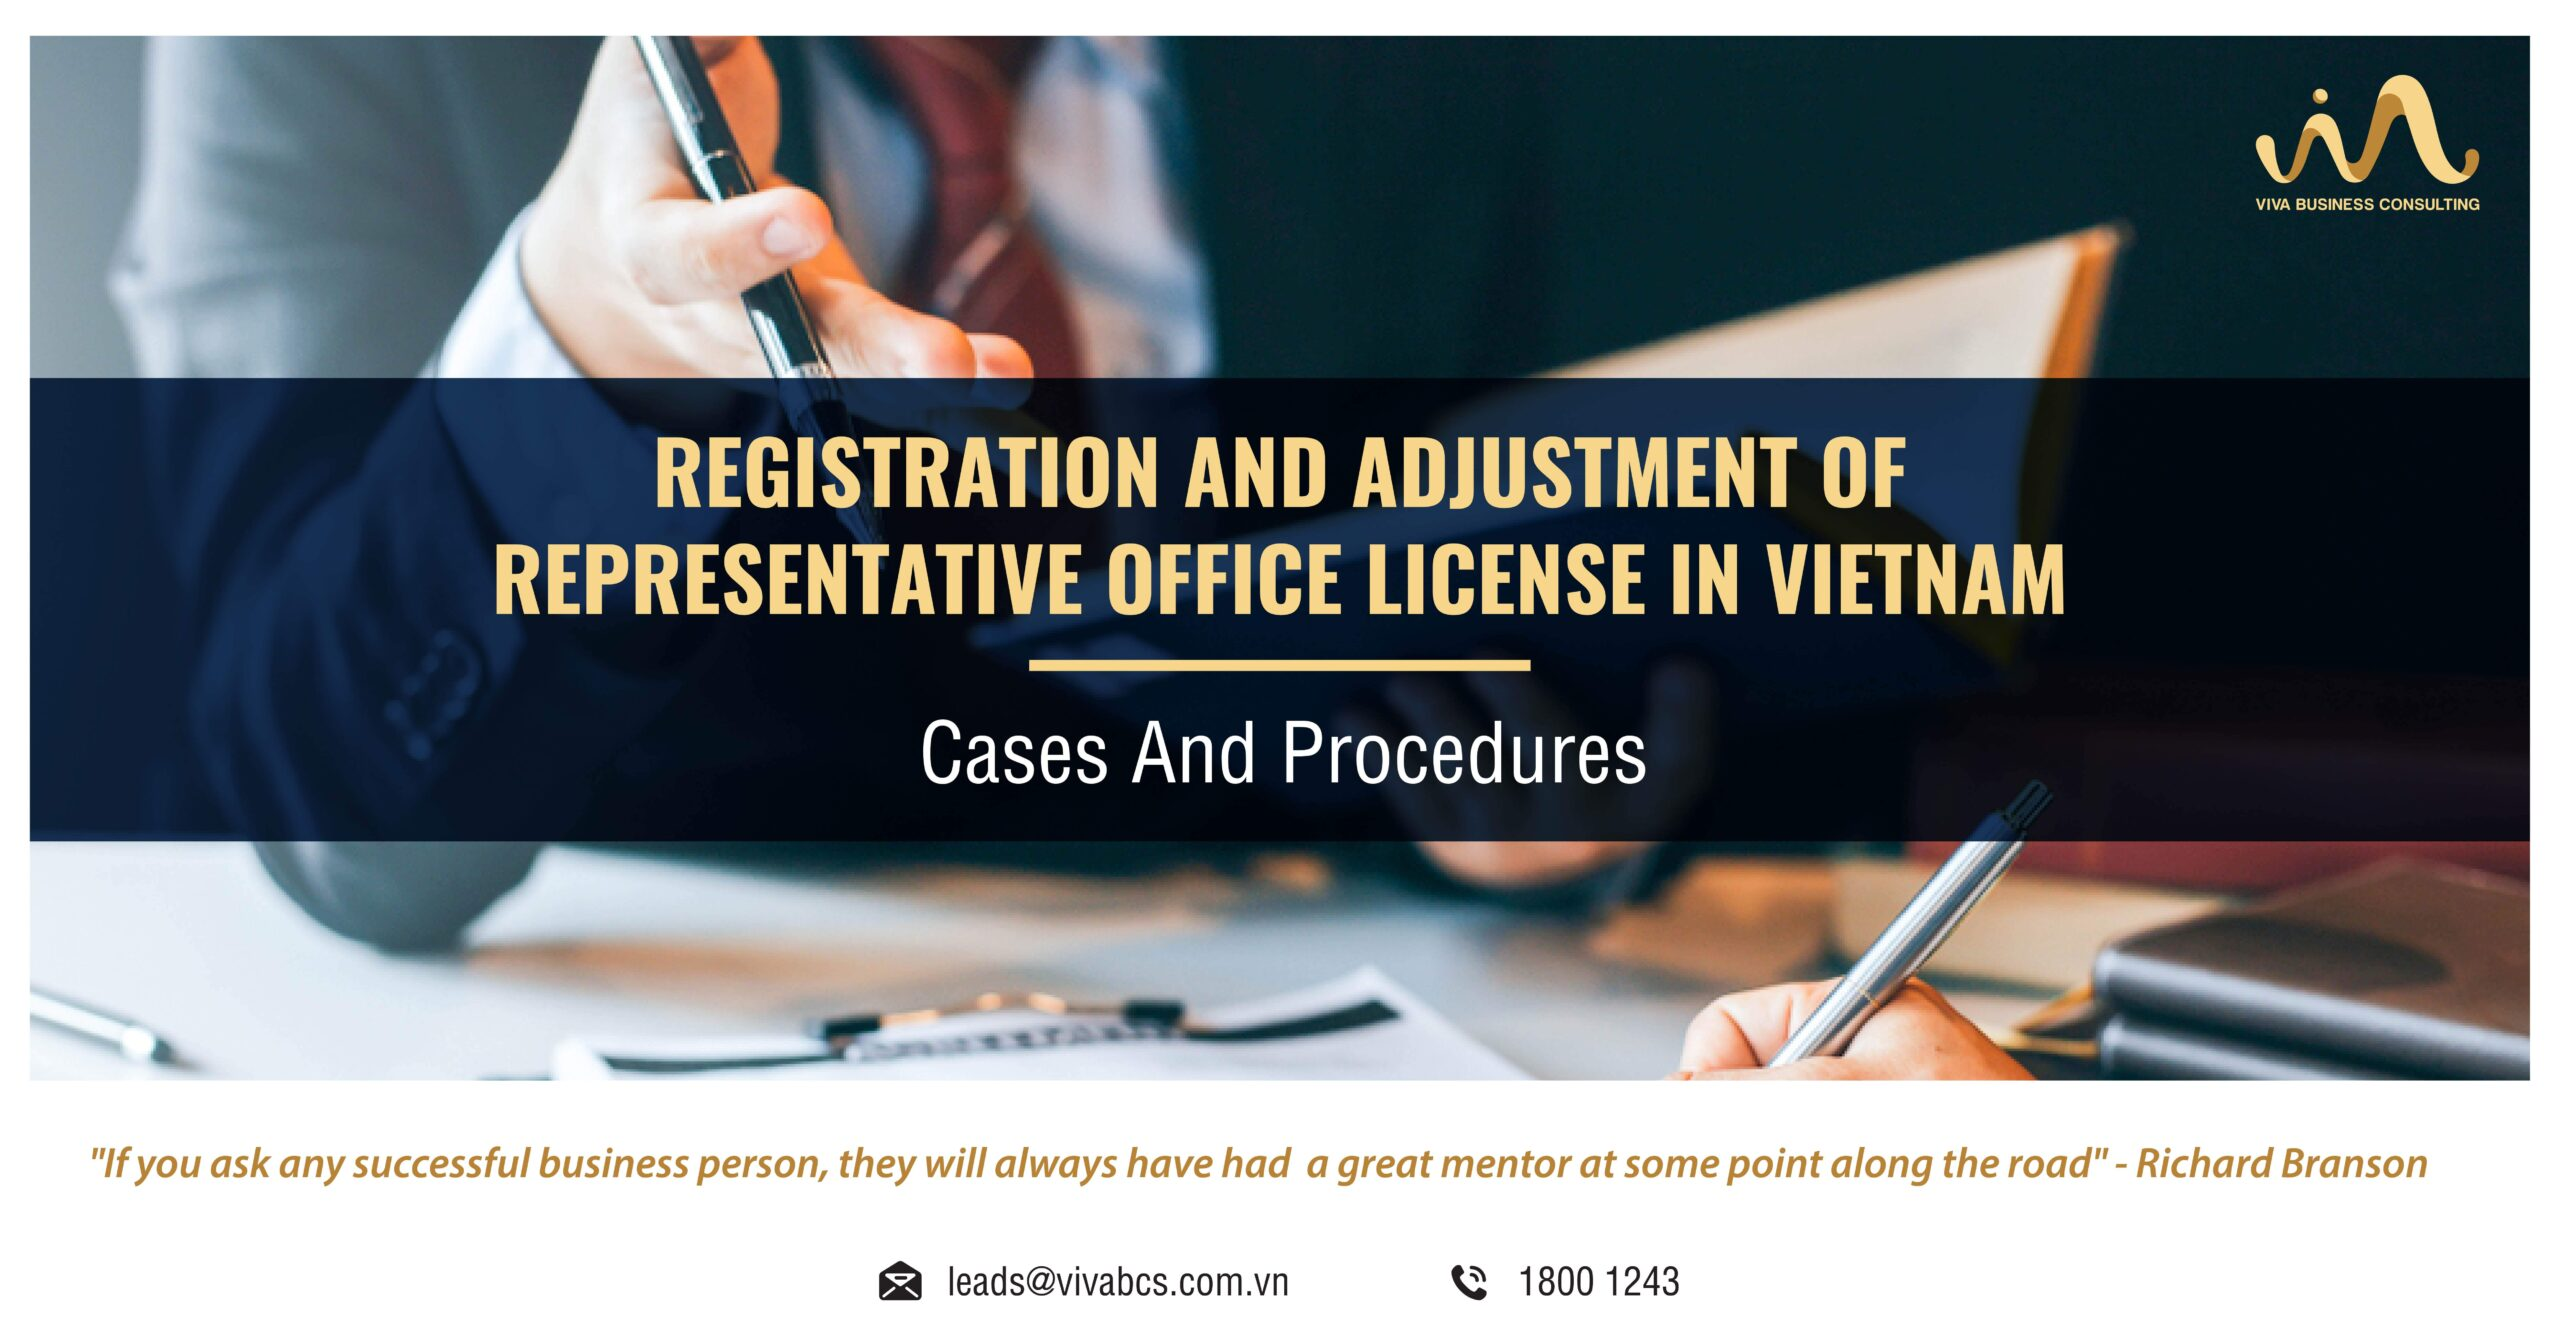 Representative office in Vietnam: Adjustment of License